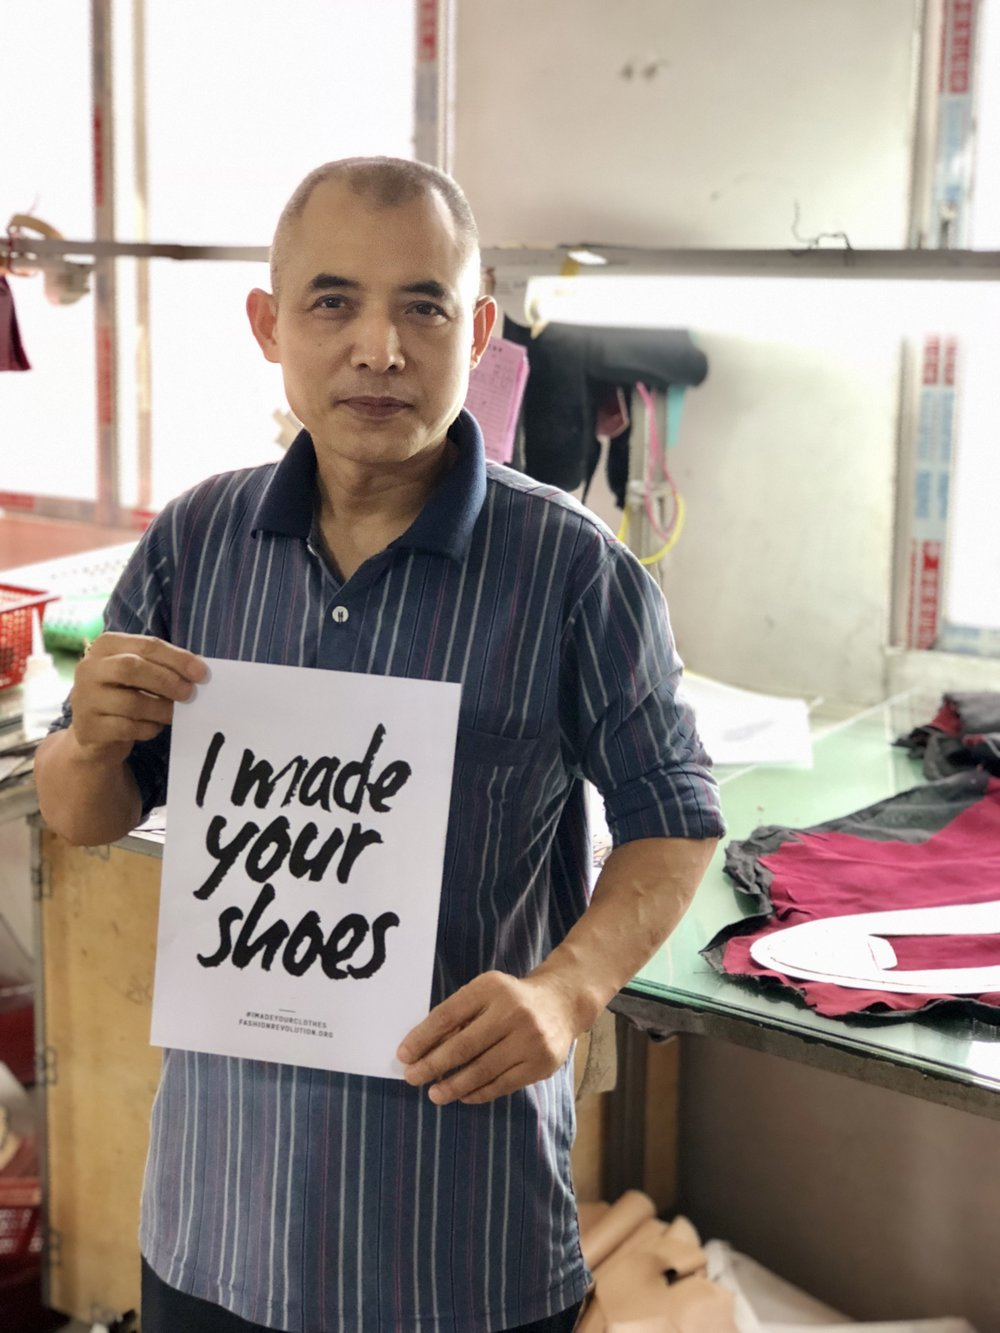 A shoemaker in a production house - Guangzhou, China, where Kathryn Wilson shoes are made